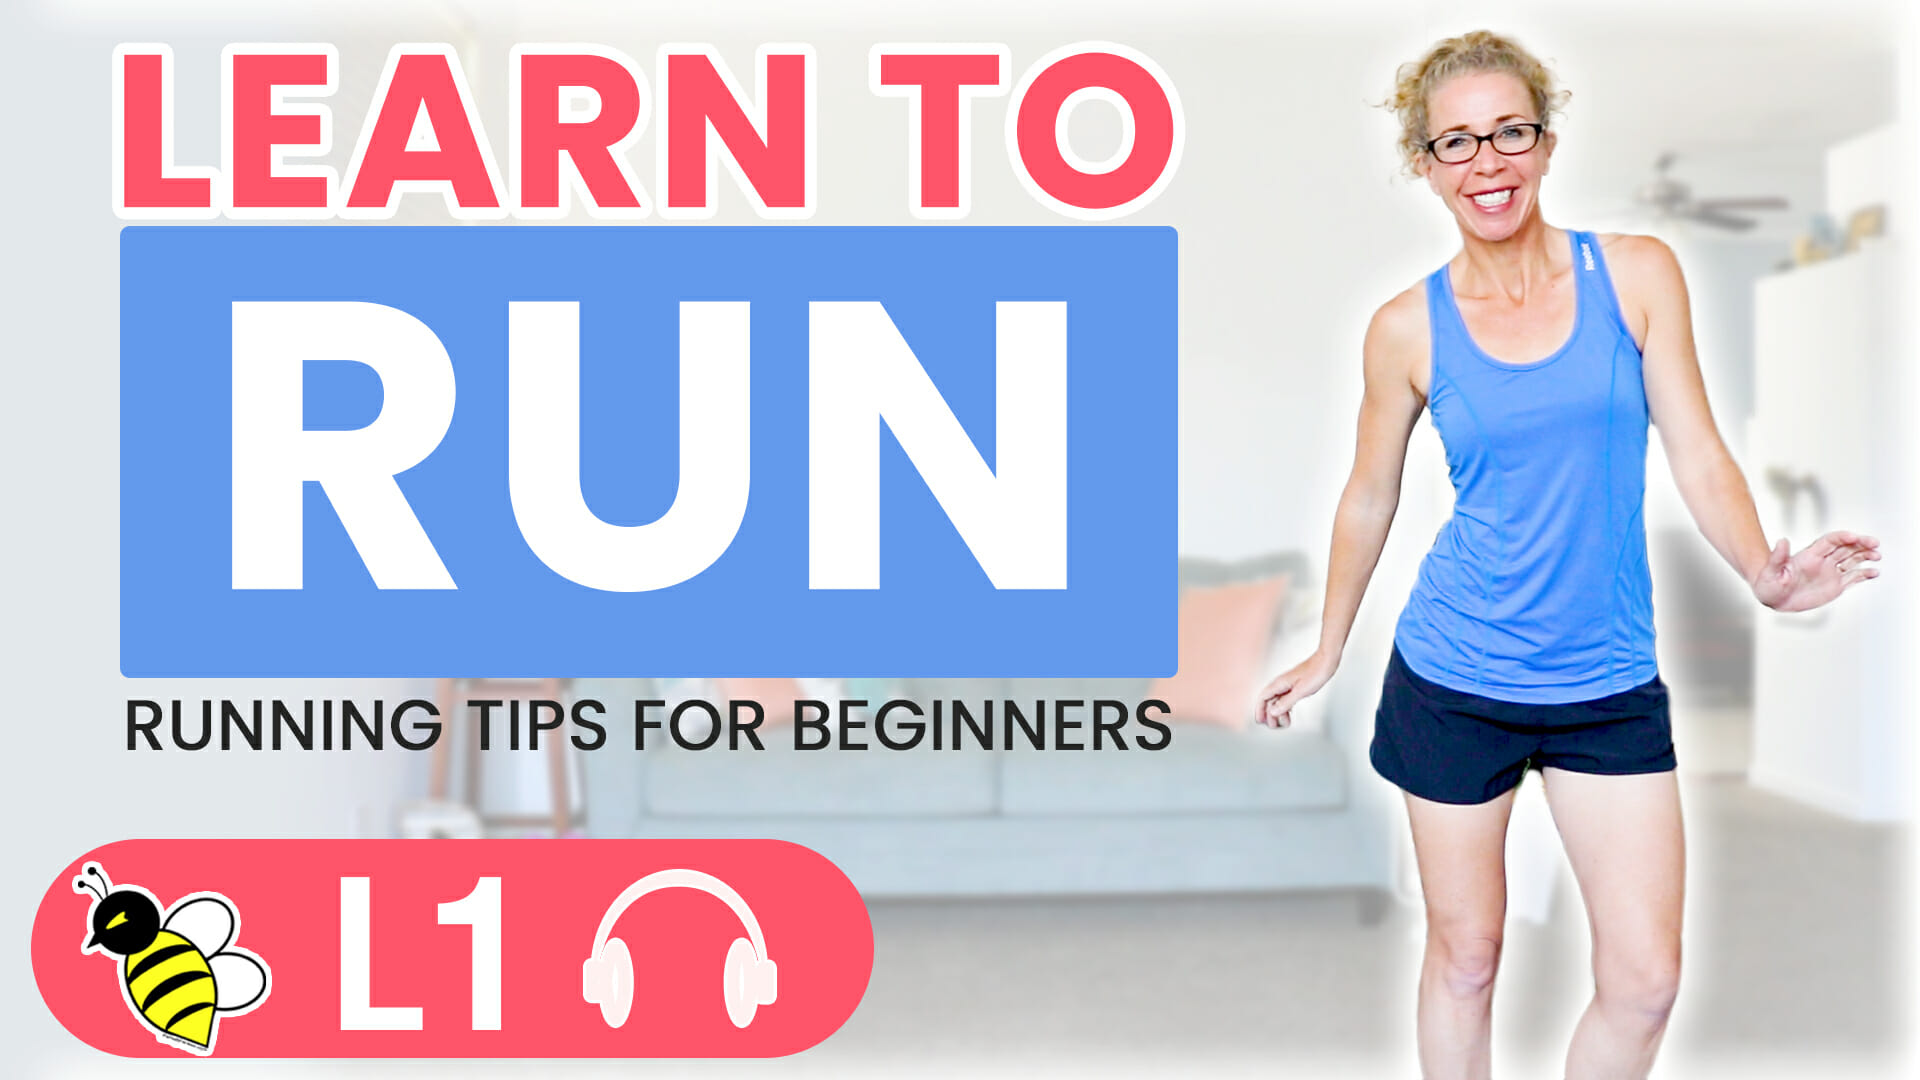 Learn to RUN with Pahla B - Running Tips for Beginners (1 Mile Workout)